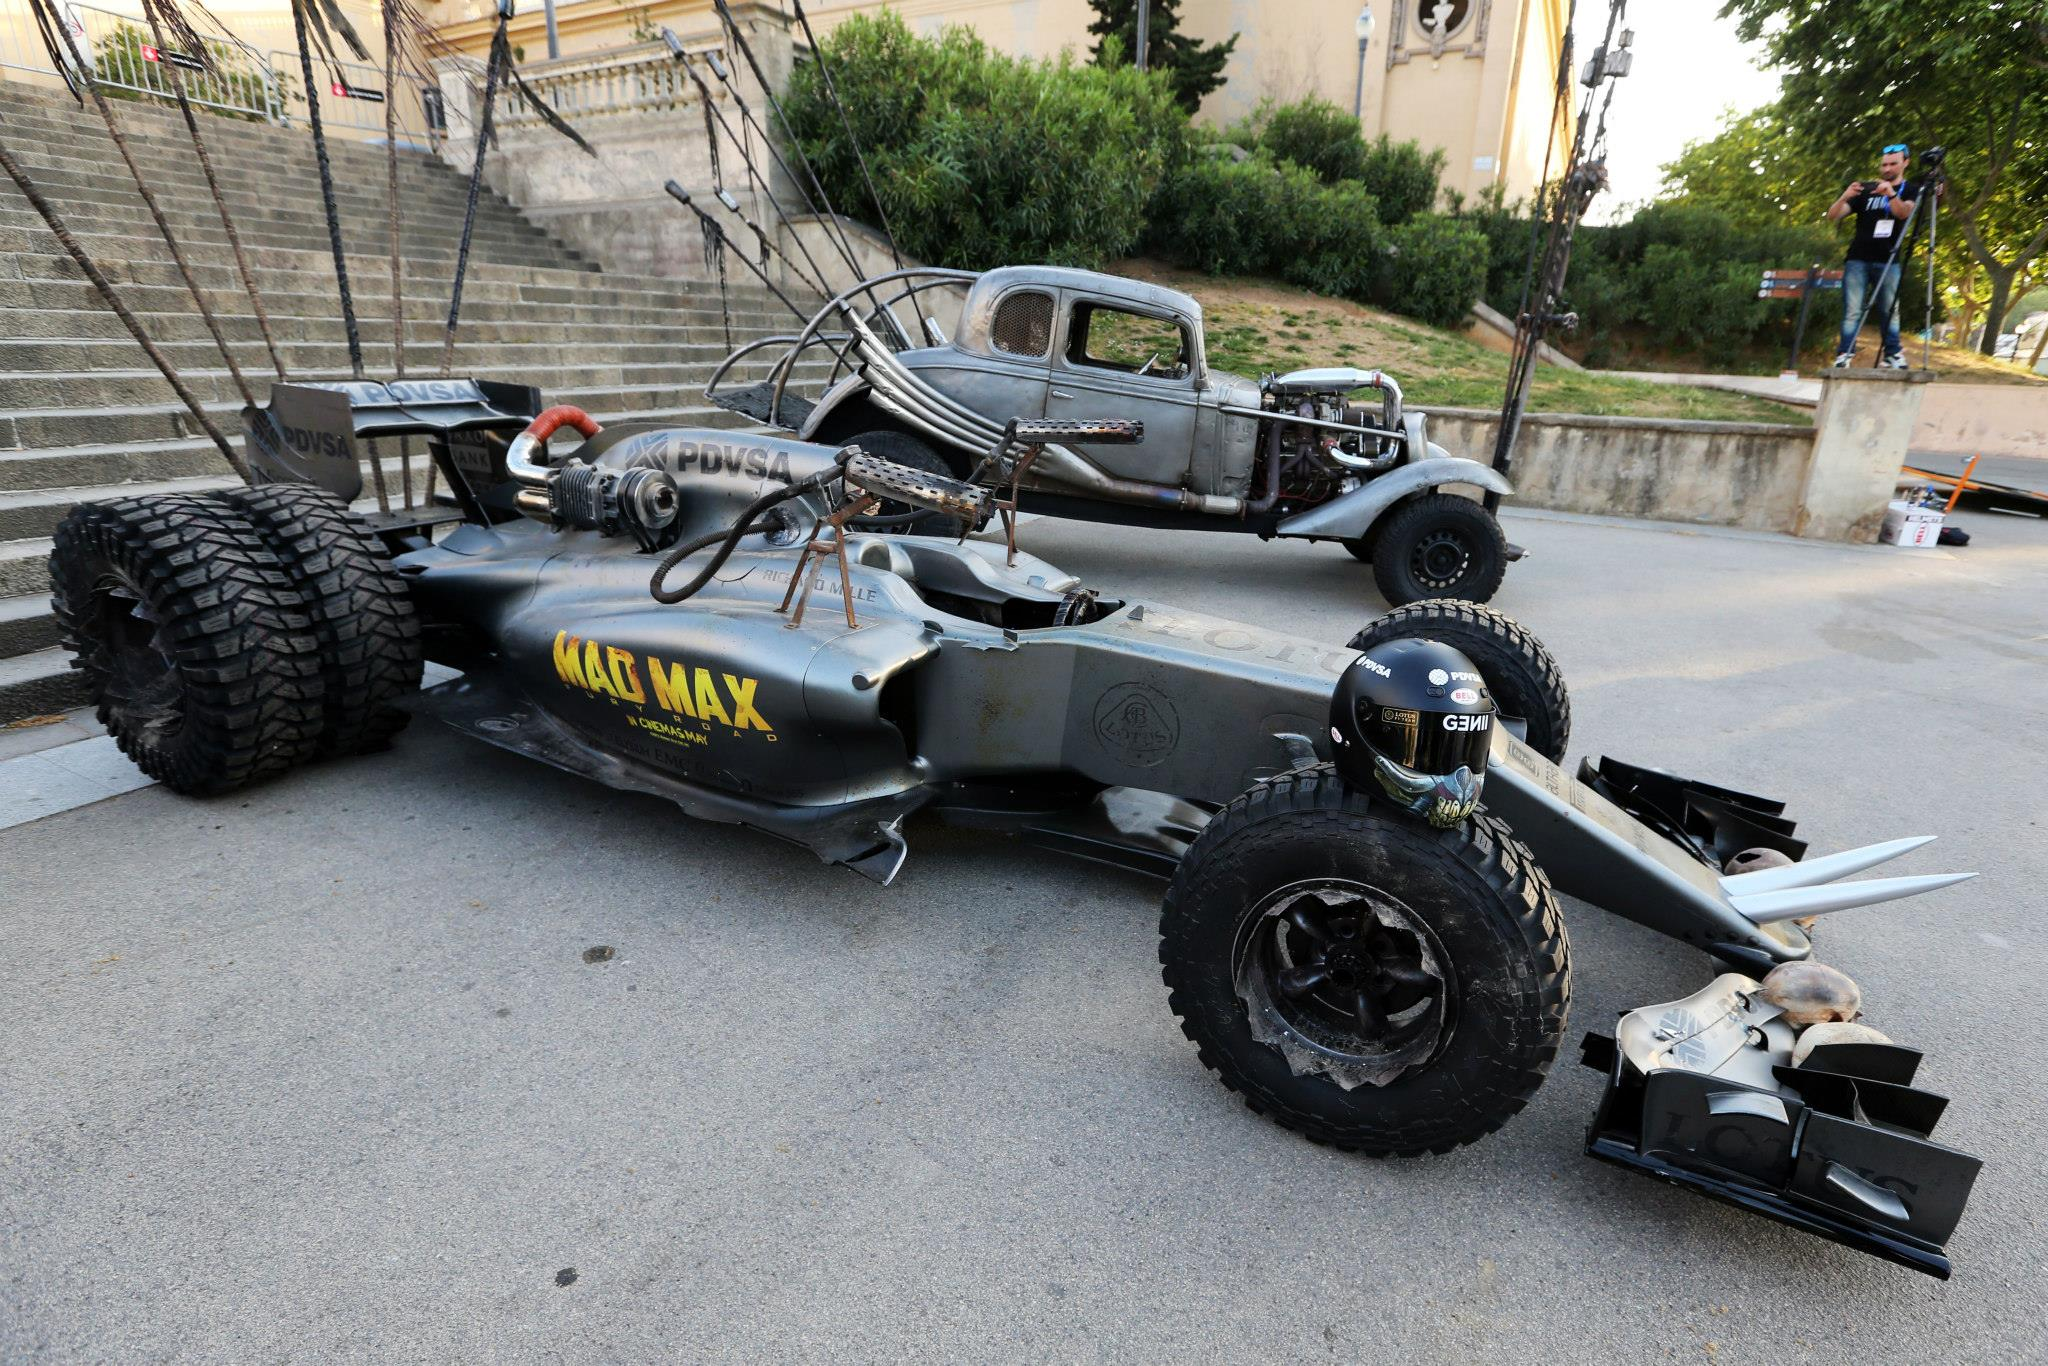 fast off road rc cars with 1098226 Lotus F1 Team Creates Awesome Mad Max Homage F1 Car on Traxxas further Fast And The Furious Nissan 350z For Sale besides 1098226 lotus F1 Team Creates Awesome Mad Max Homage F1 Car further 32787410223 likewise Sale 24451.